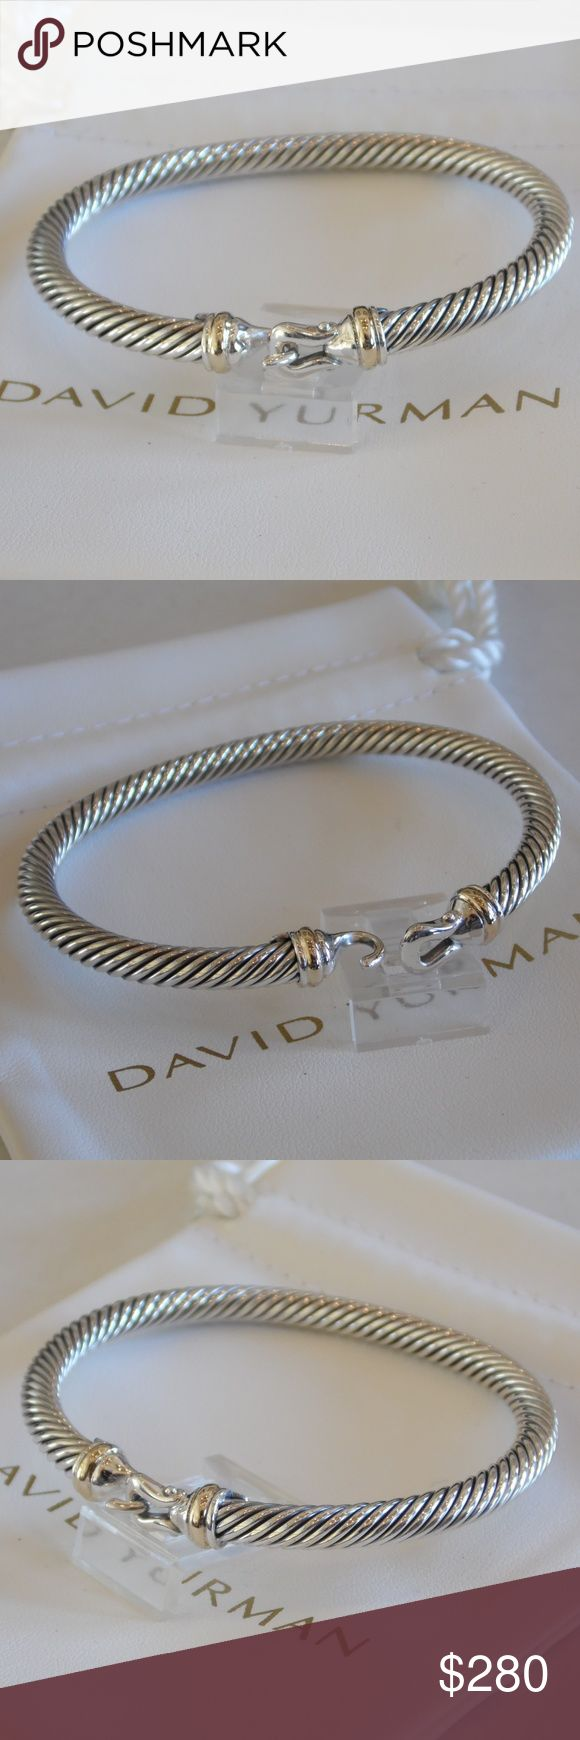 David Yurman 18k Gold Sterling Silver Bracelet New David Yurman 5mm 18kt Yellow Gold and Sterling Silver Buckle Bracelet – New without Tags. The bracelet is a size medium with inside length of 6.75 inches width of 5mm. Bracelet comes with a white David Yurman pouch. Hallmarked copyright symbol D.Y. 750 925 with buckle hook clasp.  Feel free to contact me with and questions. David Yurman Jewelry Bracelets